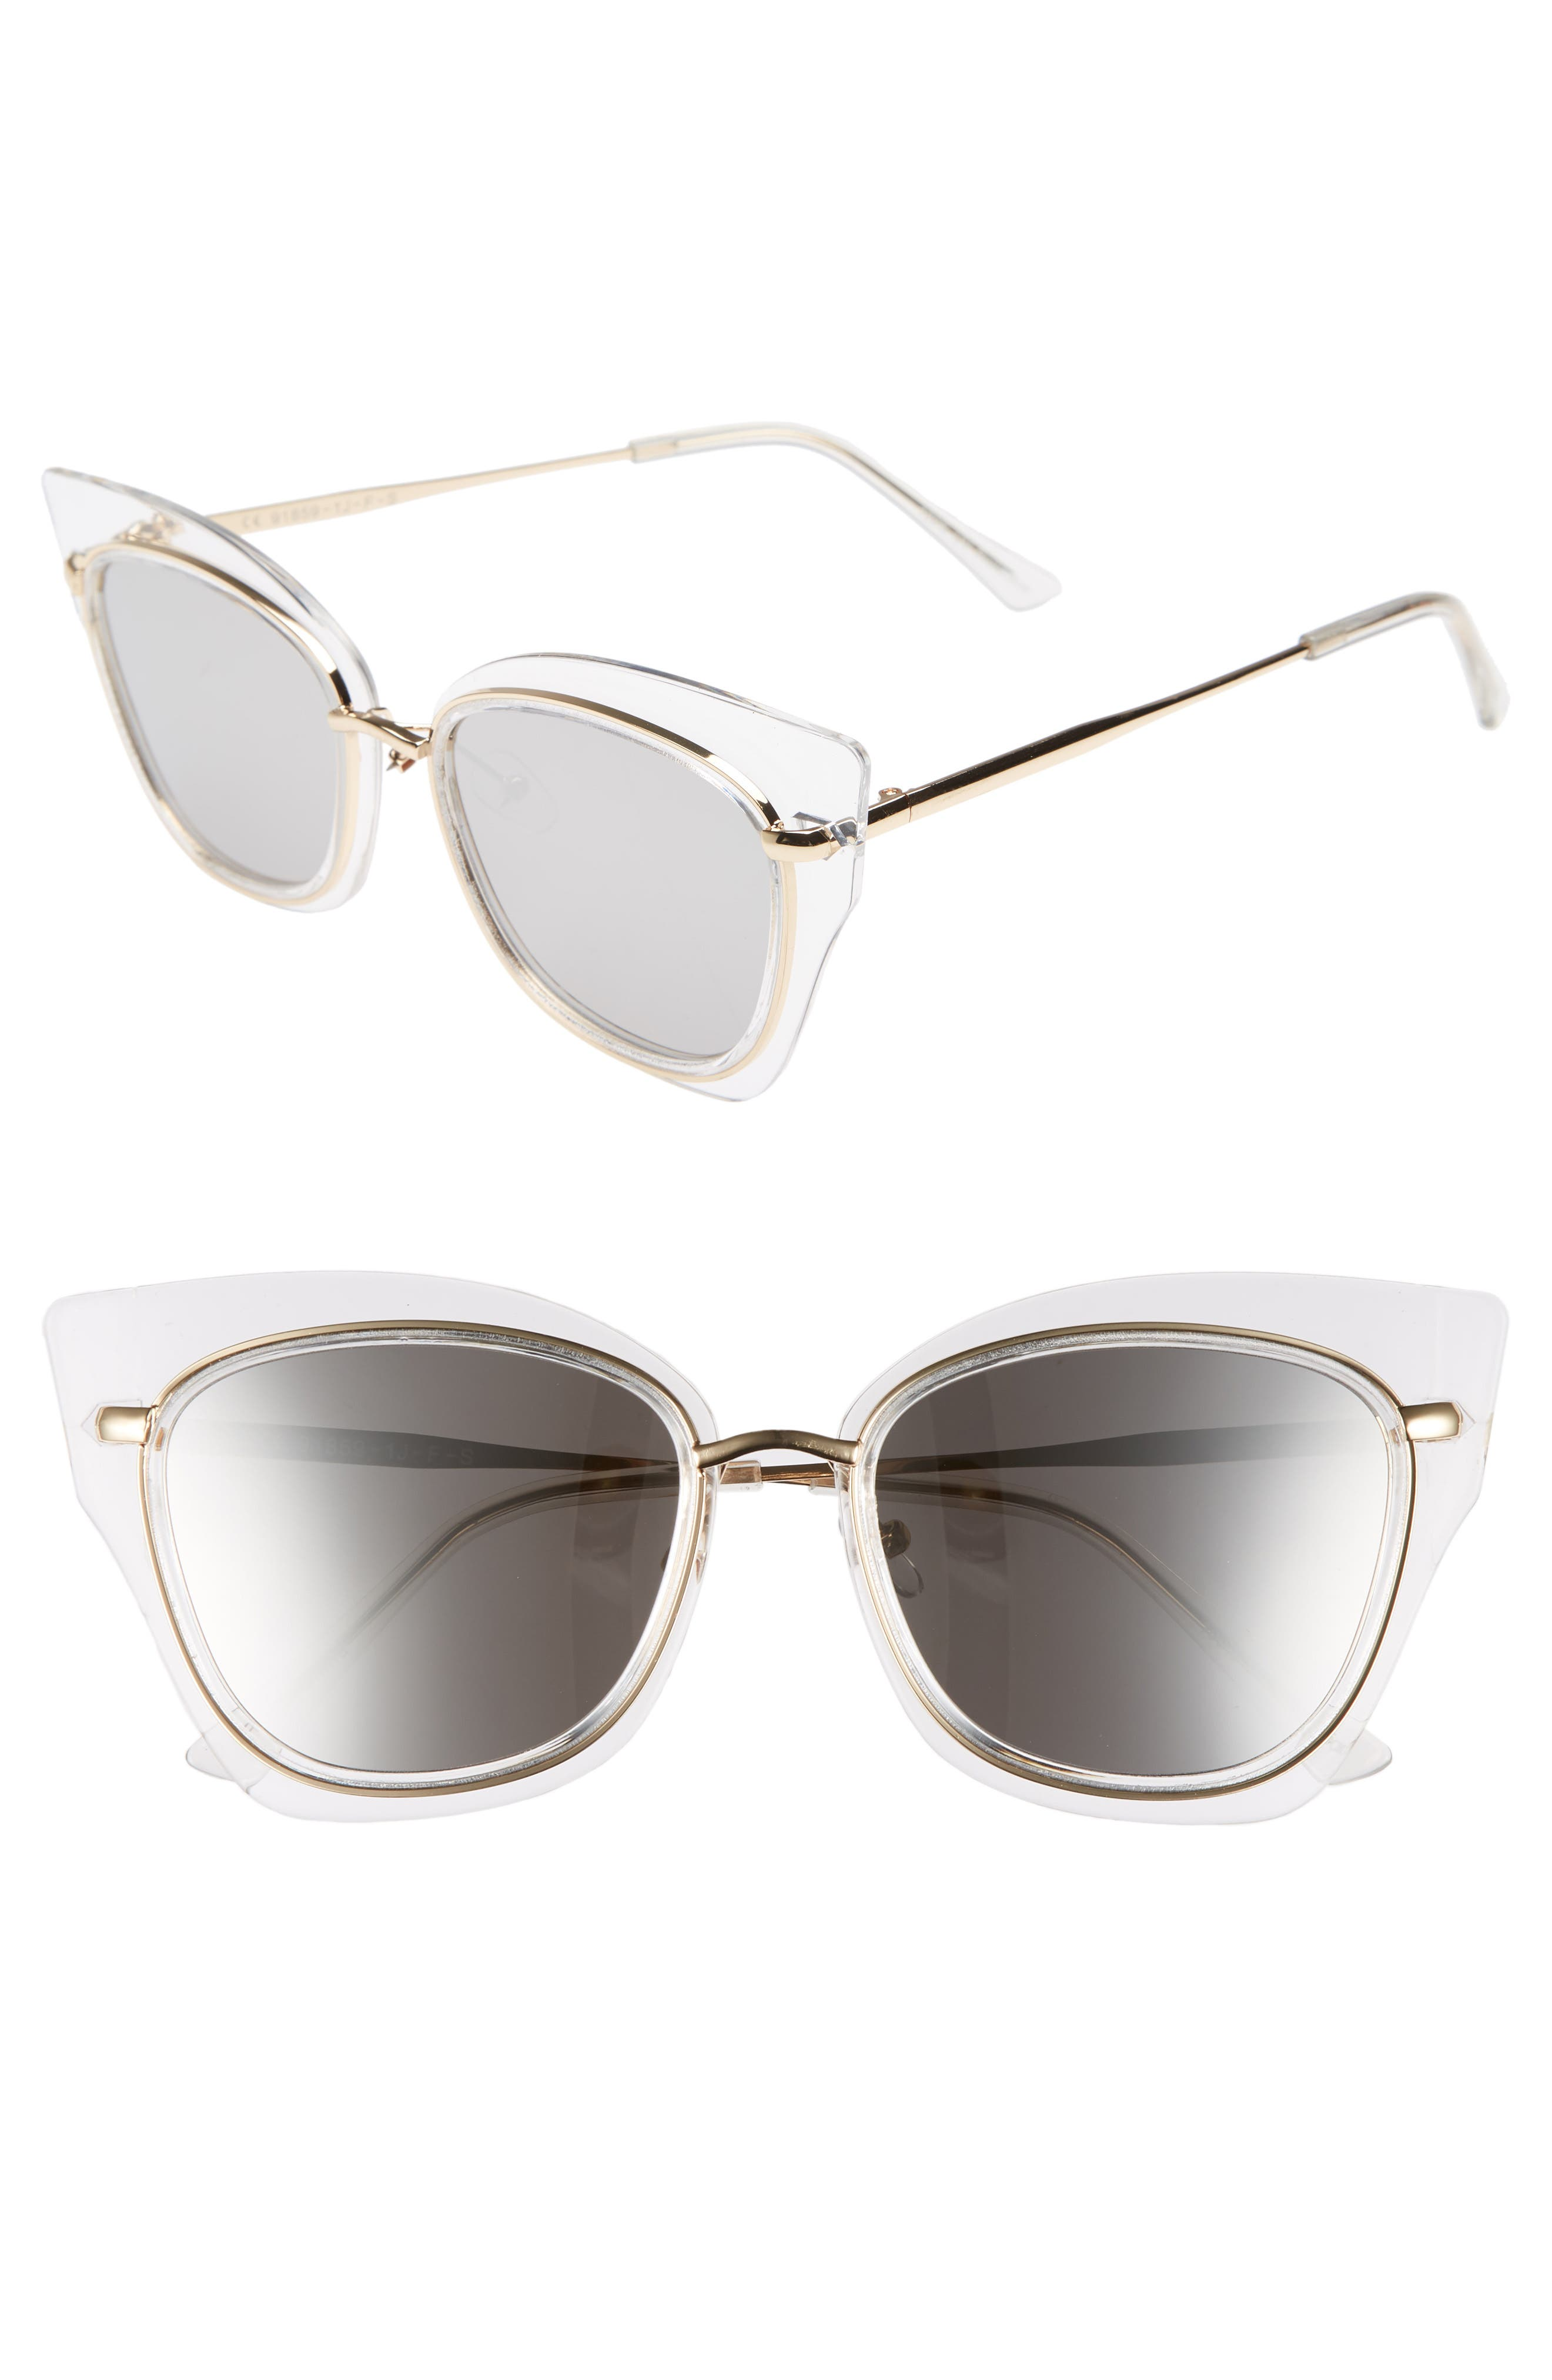 55mm Clear Winged Cat Eye Sunglasses,                         Main,                         color, CLEAR/ GOLD